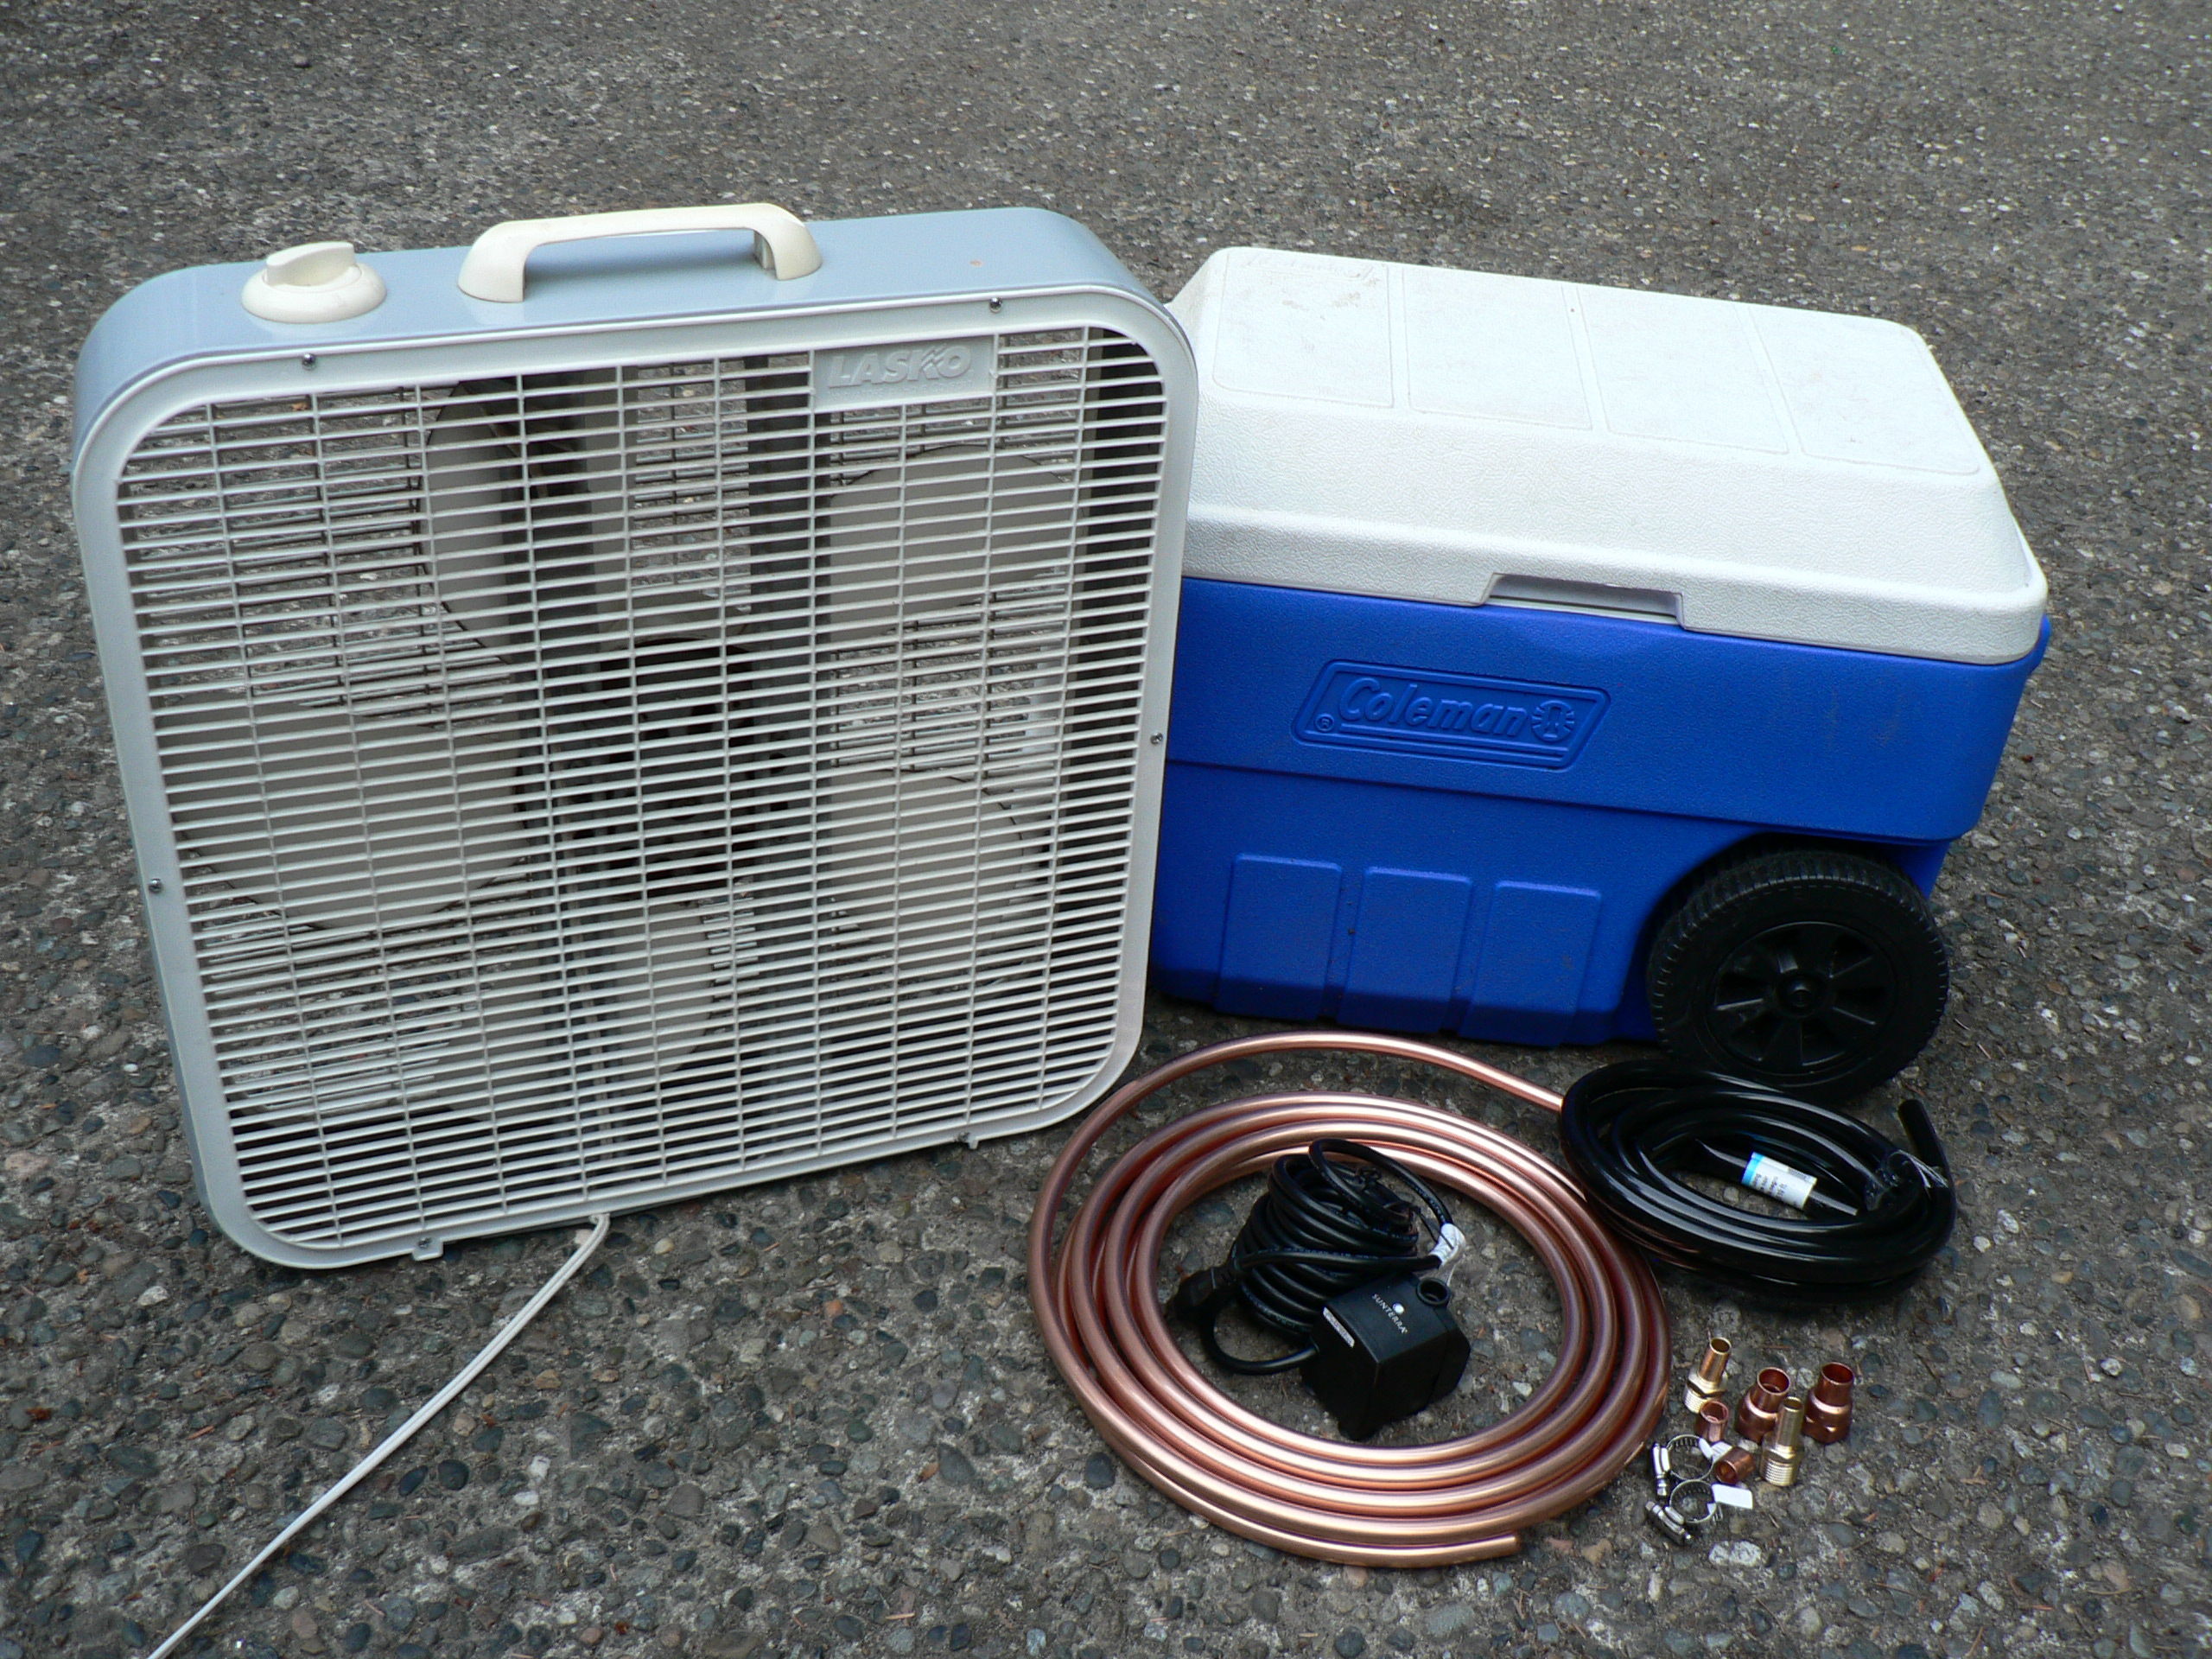 Build Your Own Evaporative Cooler : Garmi bho lets make a home made air conditioner